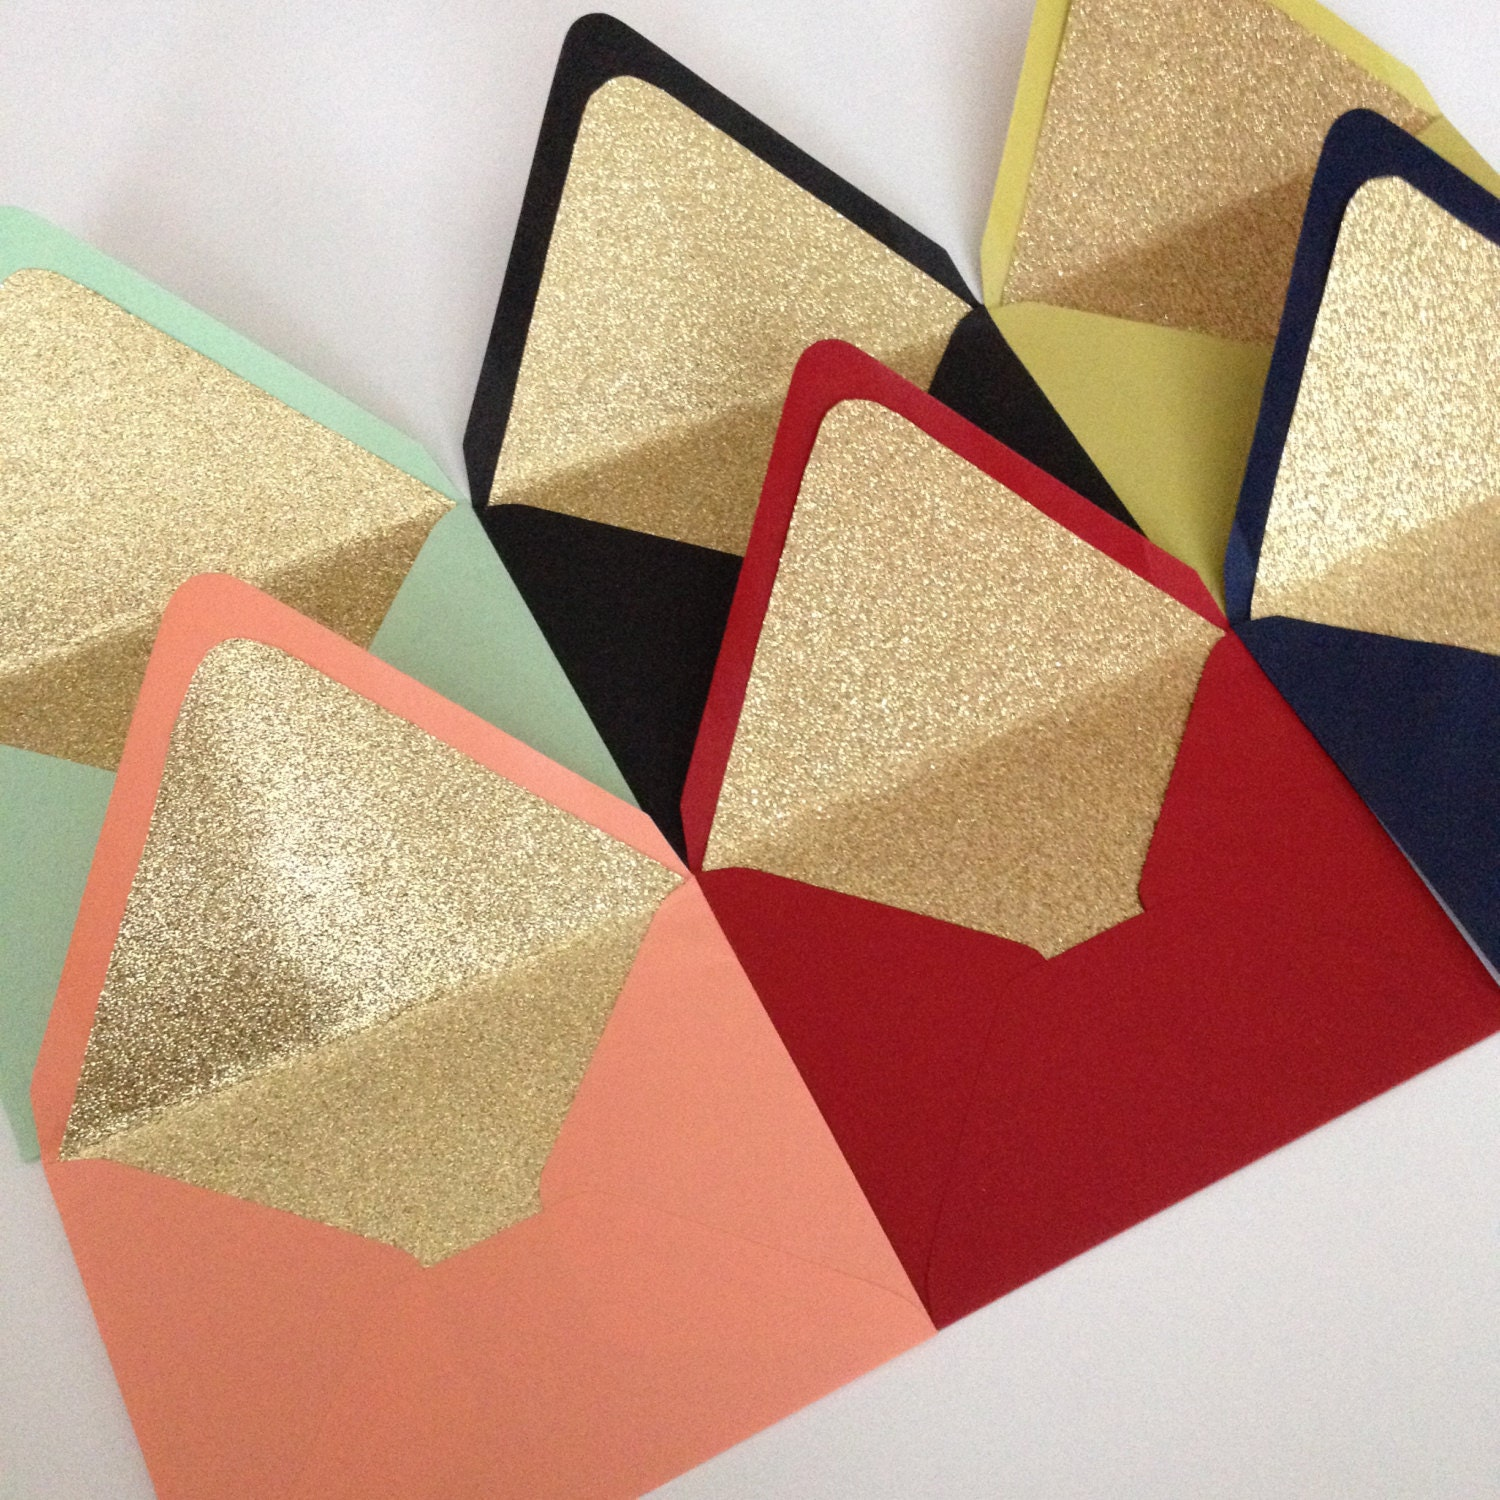 https://www.etsy.com/listing/210127342/set-of-10-gold-glitter-lined-envelopes?ref=shop_home_active_9